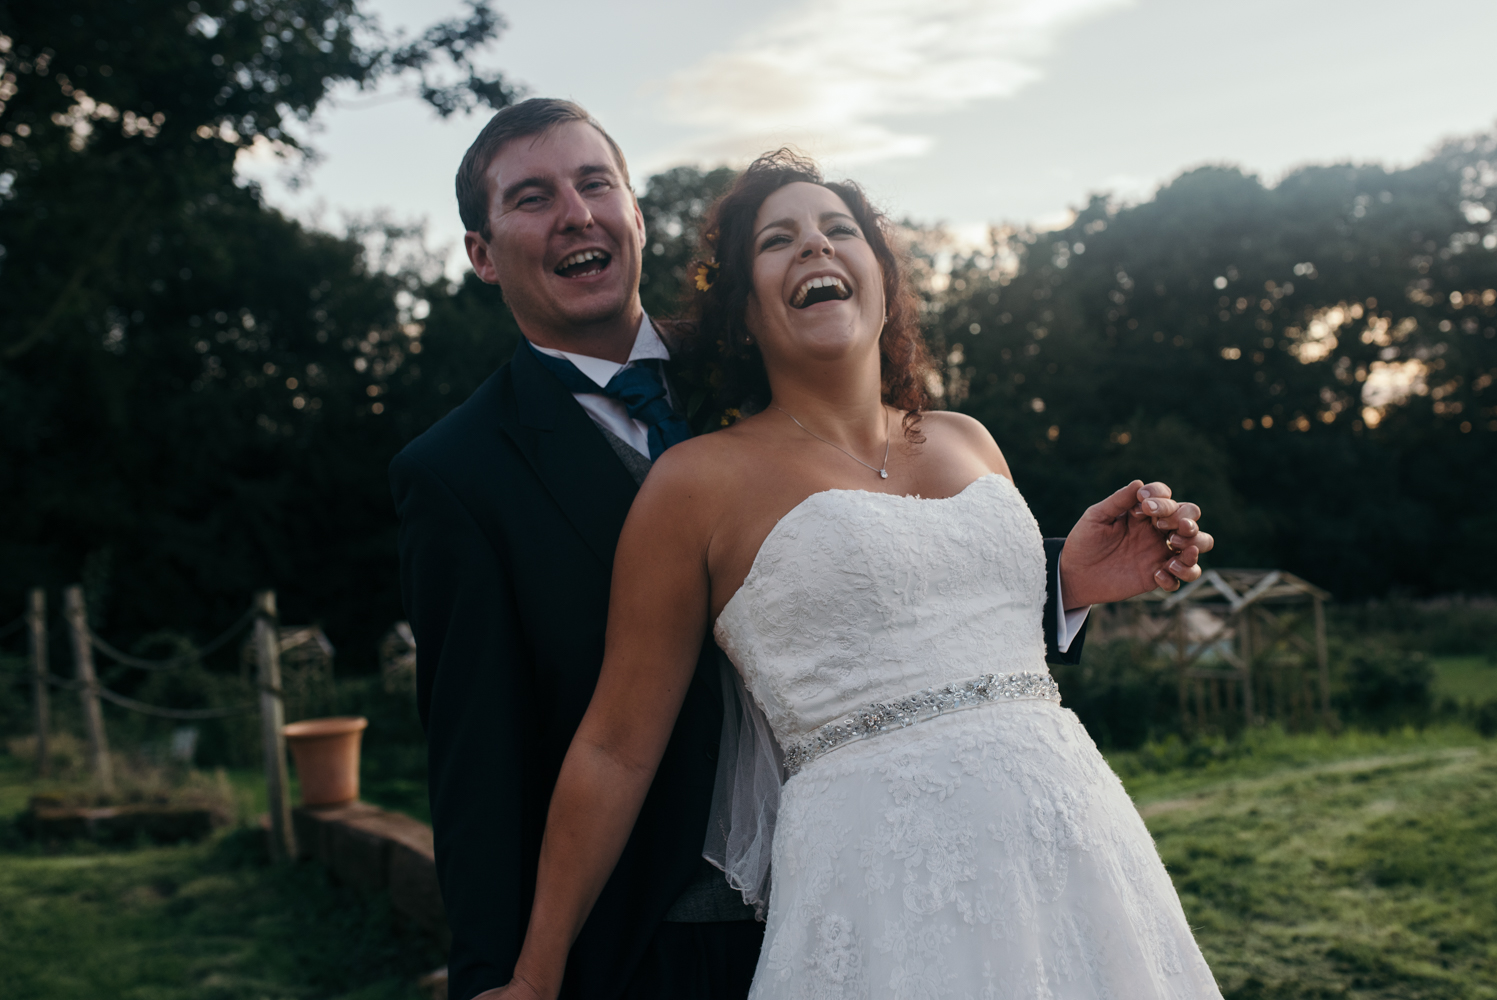 The groom tickling the bride during the portrait shoot